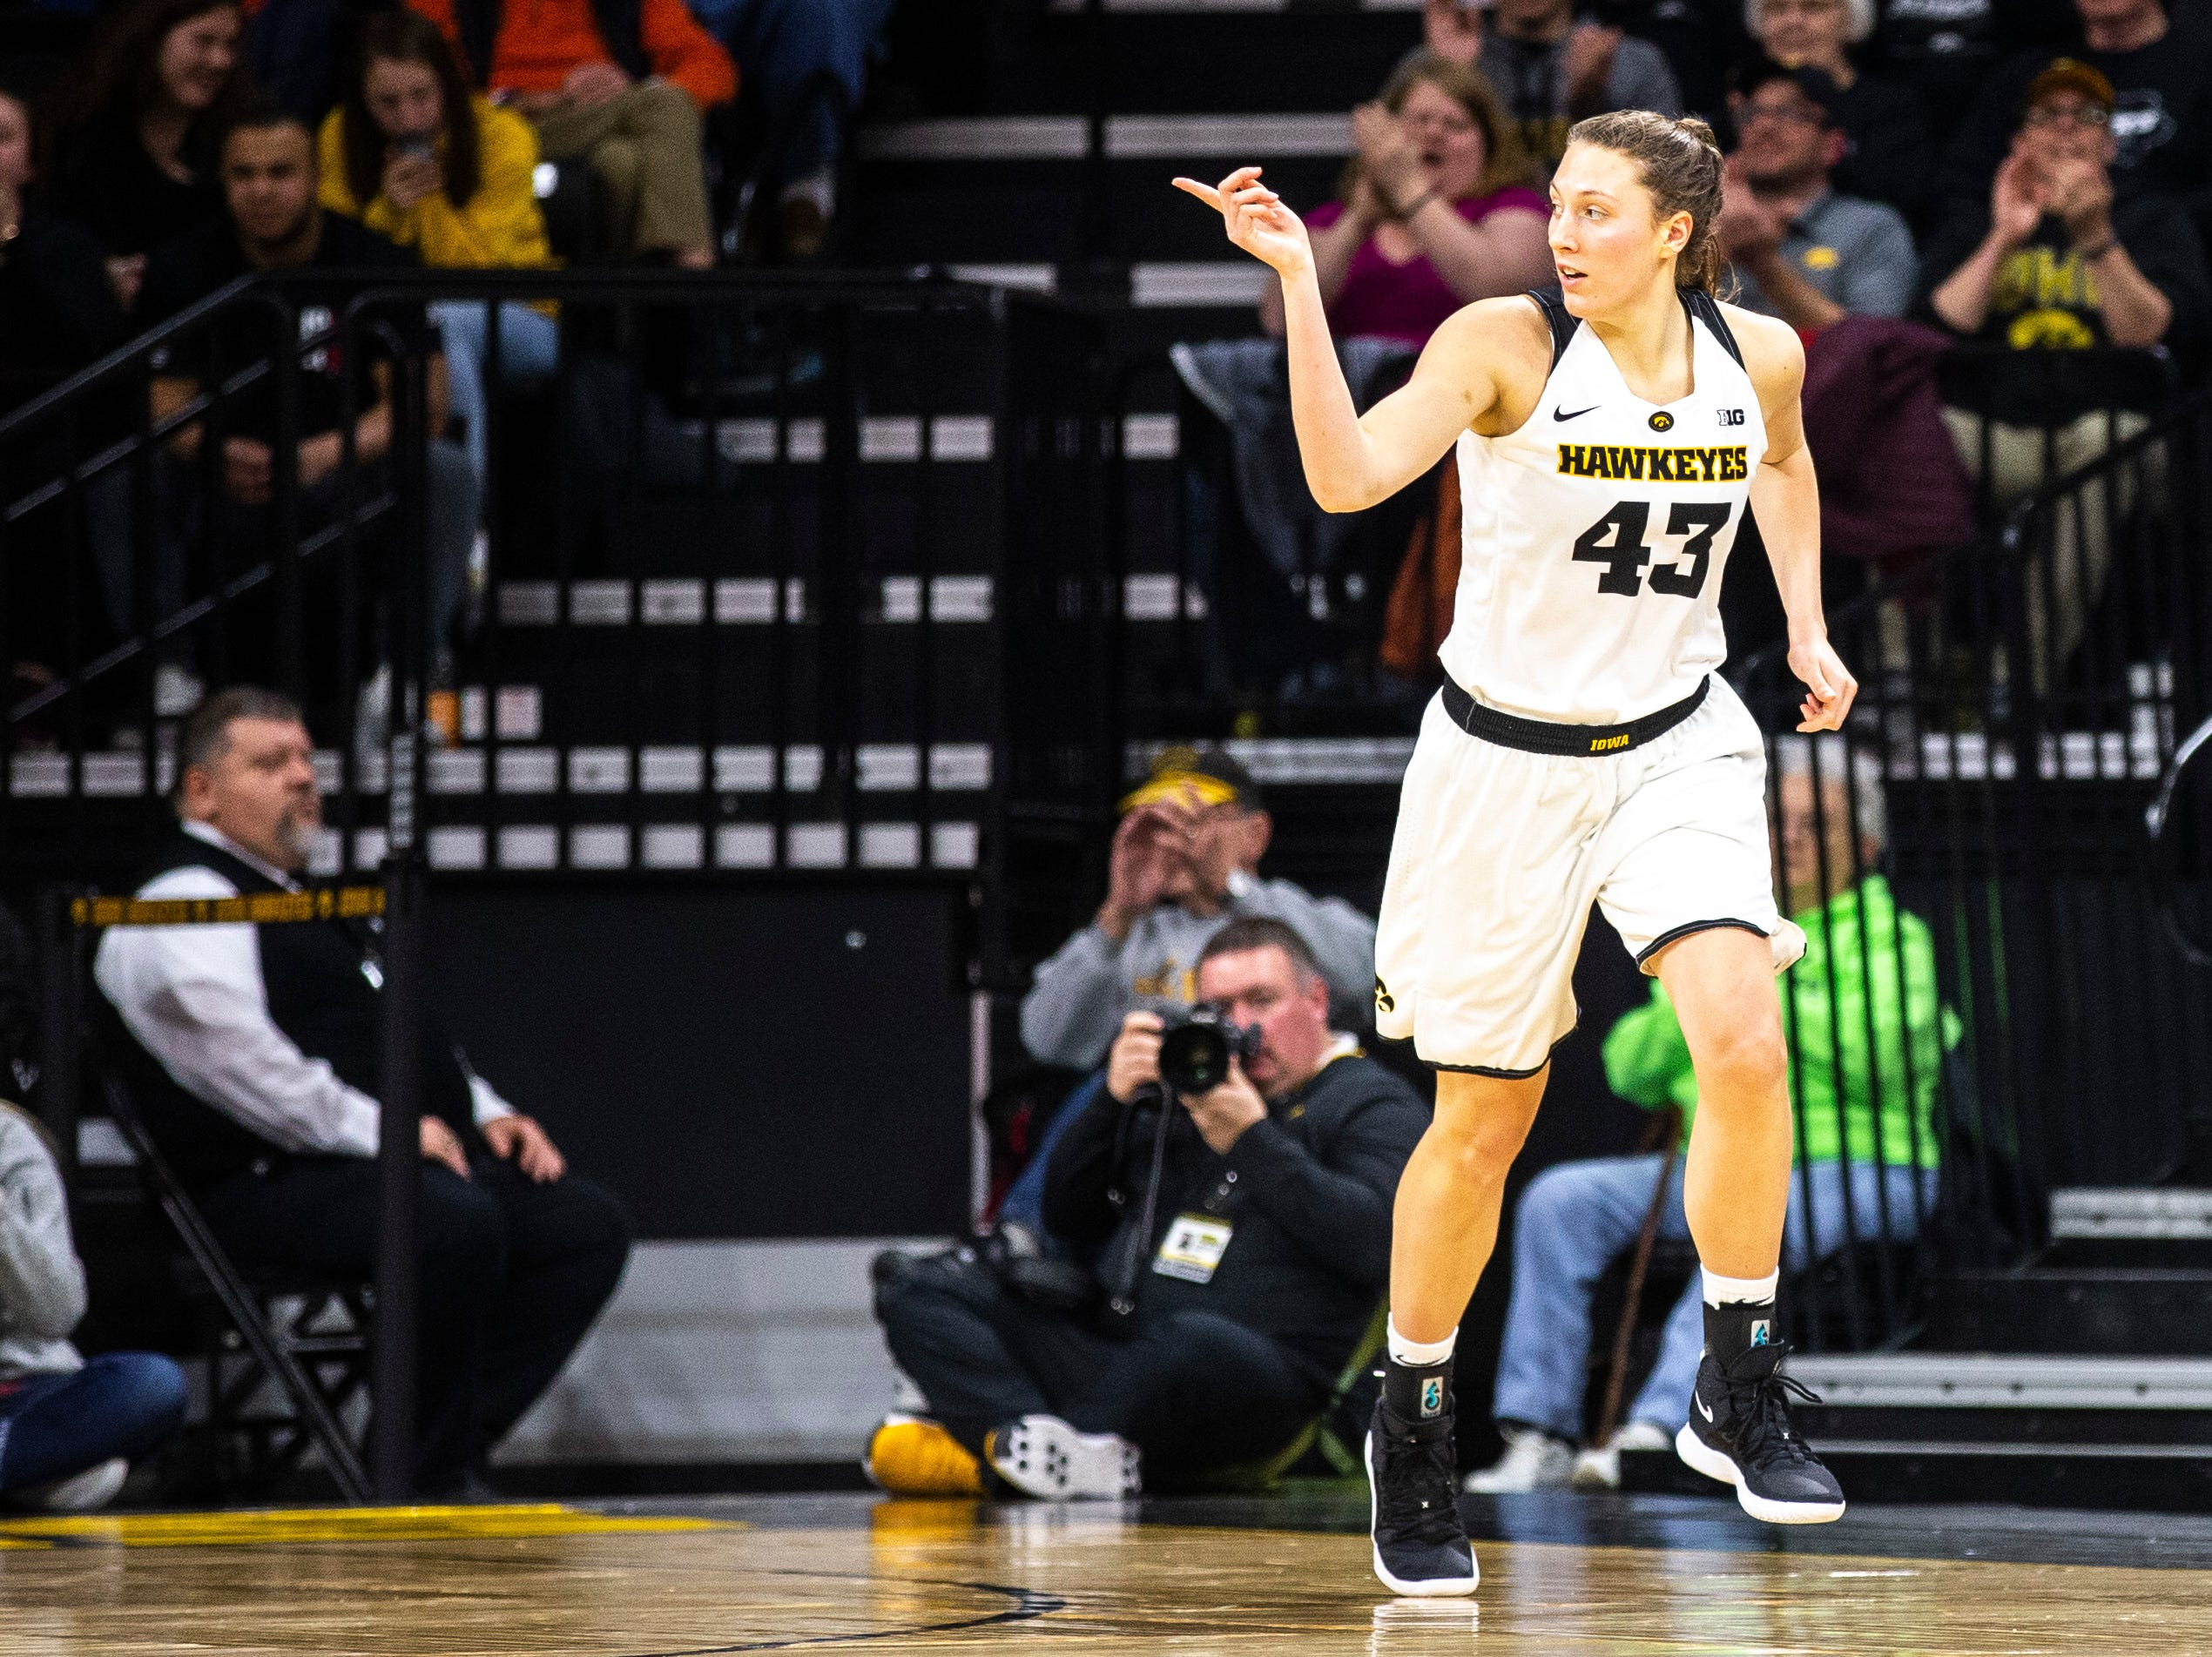 Iowa forward Amanda Ollinger (43) celebrates after making a 3-point basket during a NCAA Big Ten Conference women's basketball game on Thursday, Feb. 14, 2019 at Carver-Hawkeye Arena in Iowa City, Iowa.